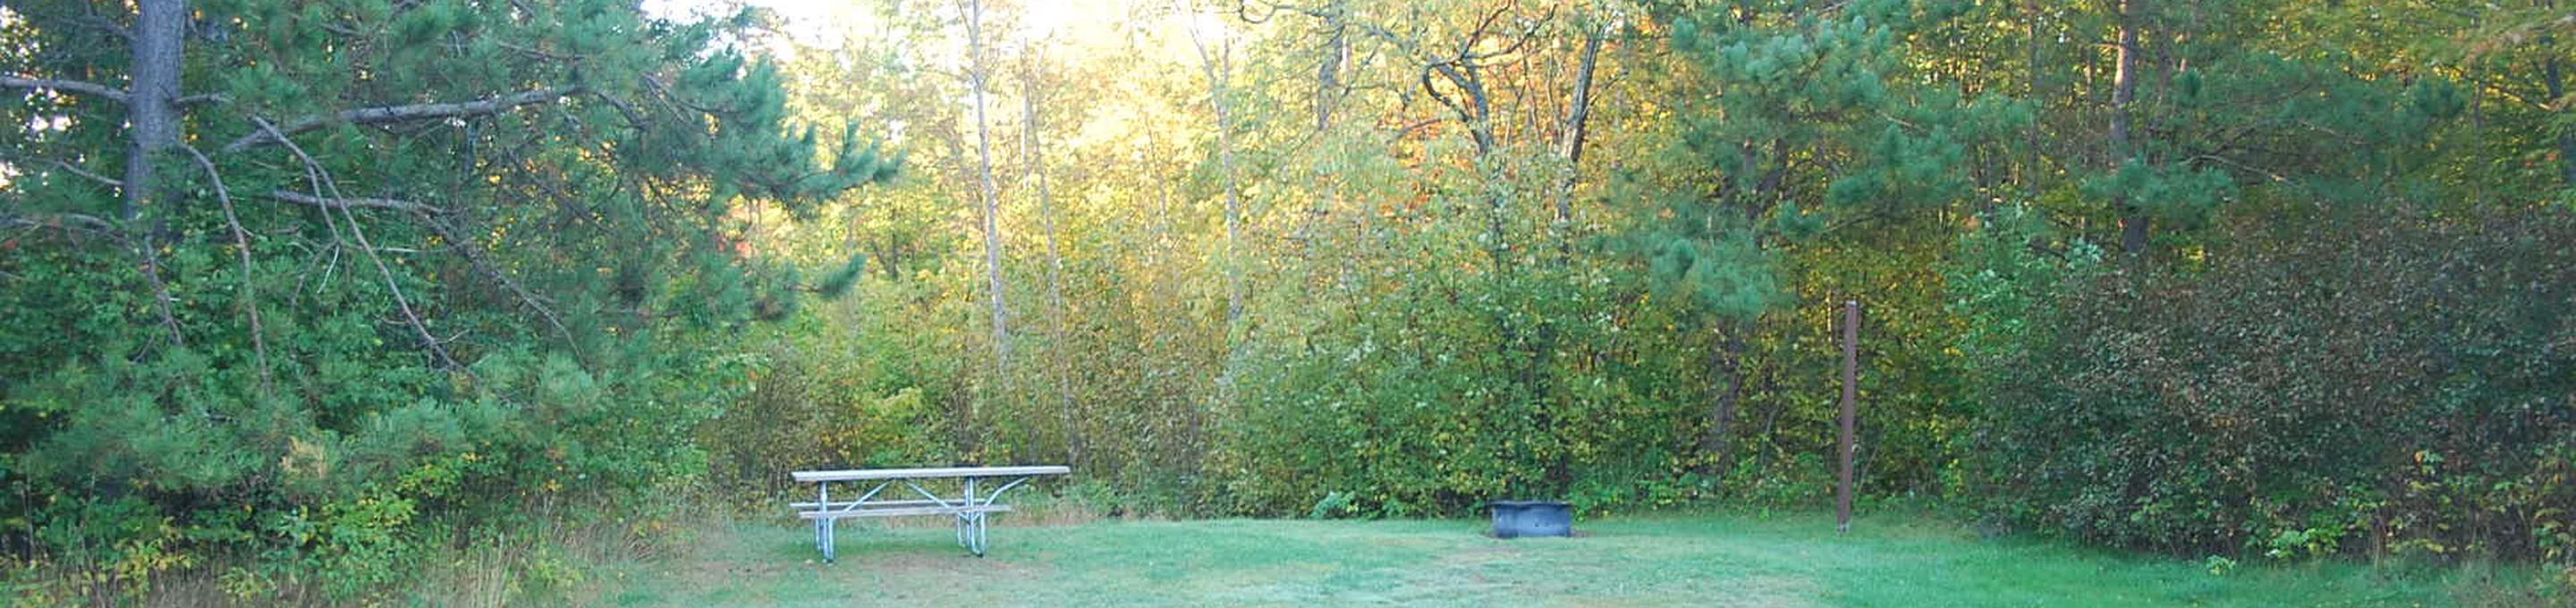 Bay Furnace Campground site #48; heavily treed site with picnic table and fire pit.